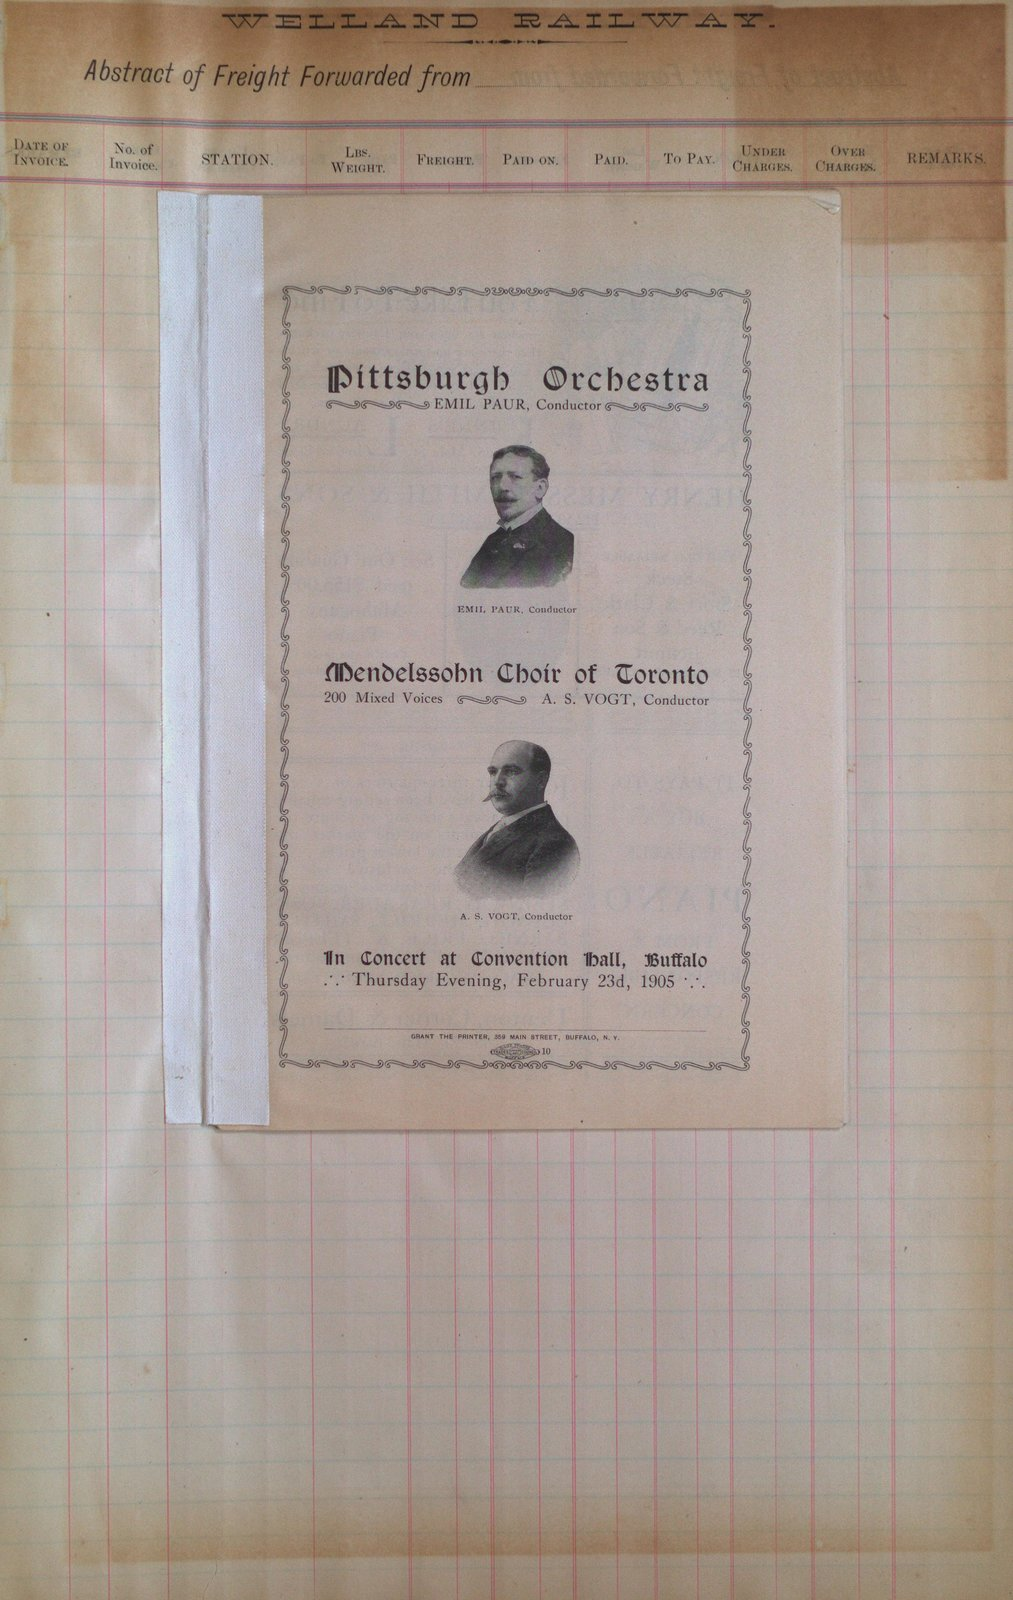 Teresa Vanderburgh's Musical Scrapbook #2 - Program for a Concert Given by The Pittsburgh Orchestra & The Mendelssohn Choir Concert